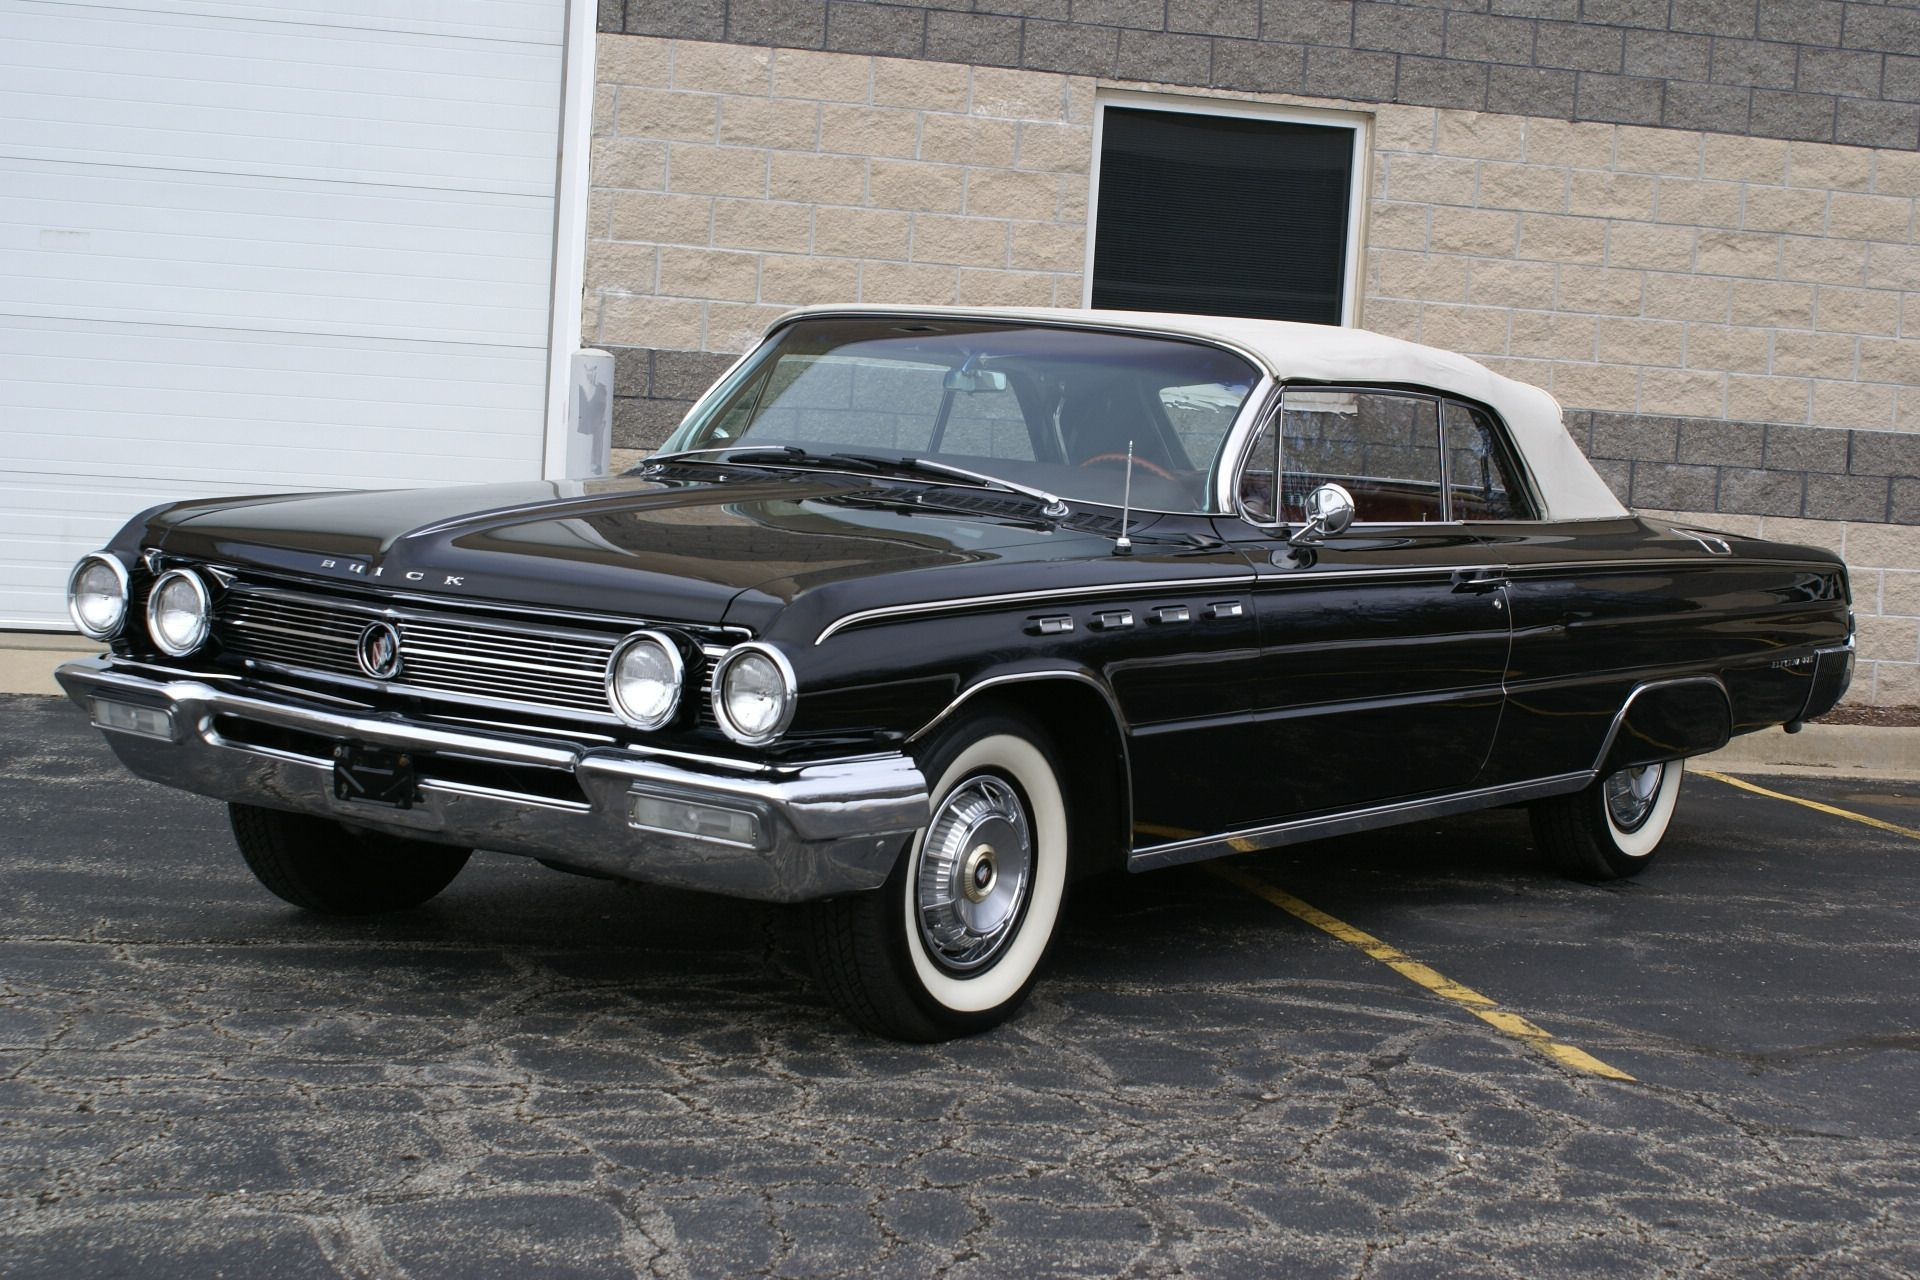 1962 Buick Electra 225 For Sale | All Collector Cars | Classic Buick ...